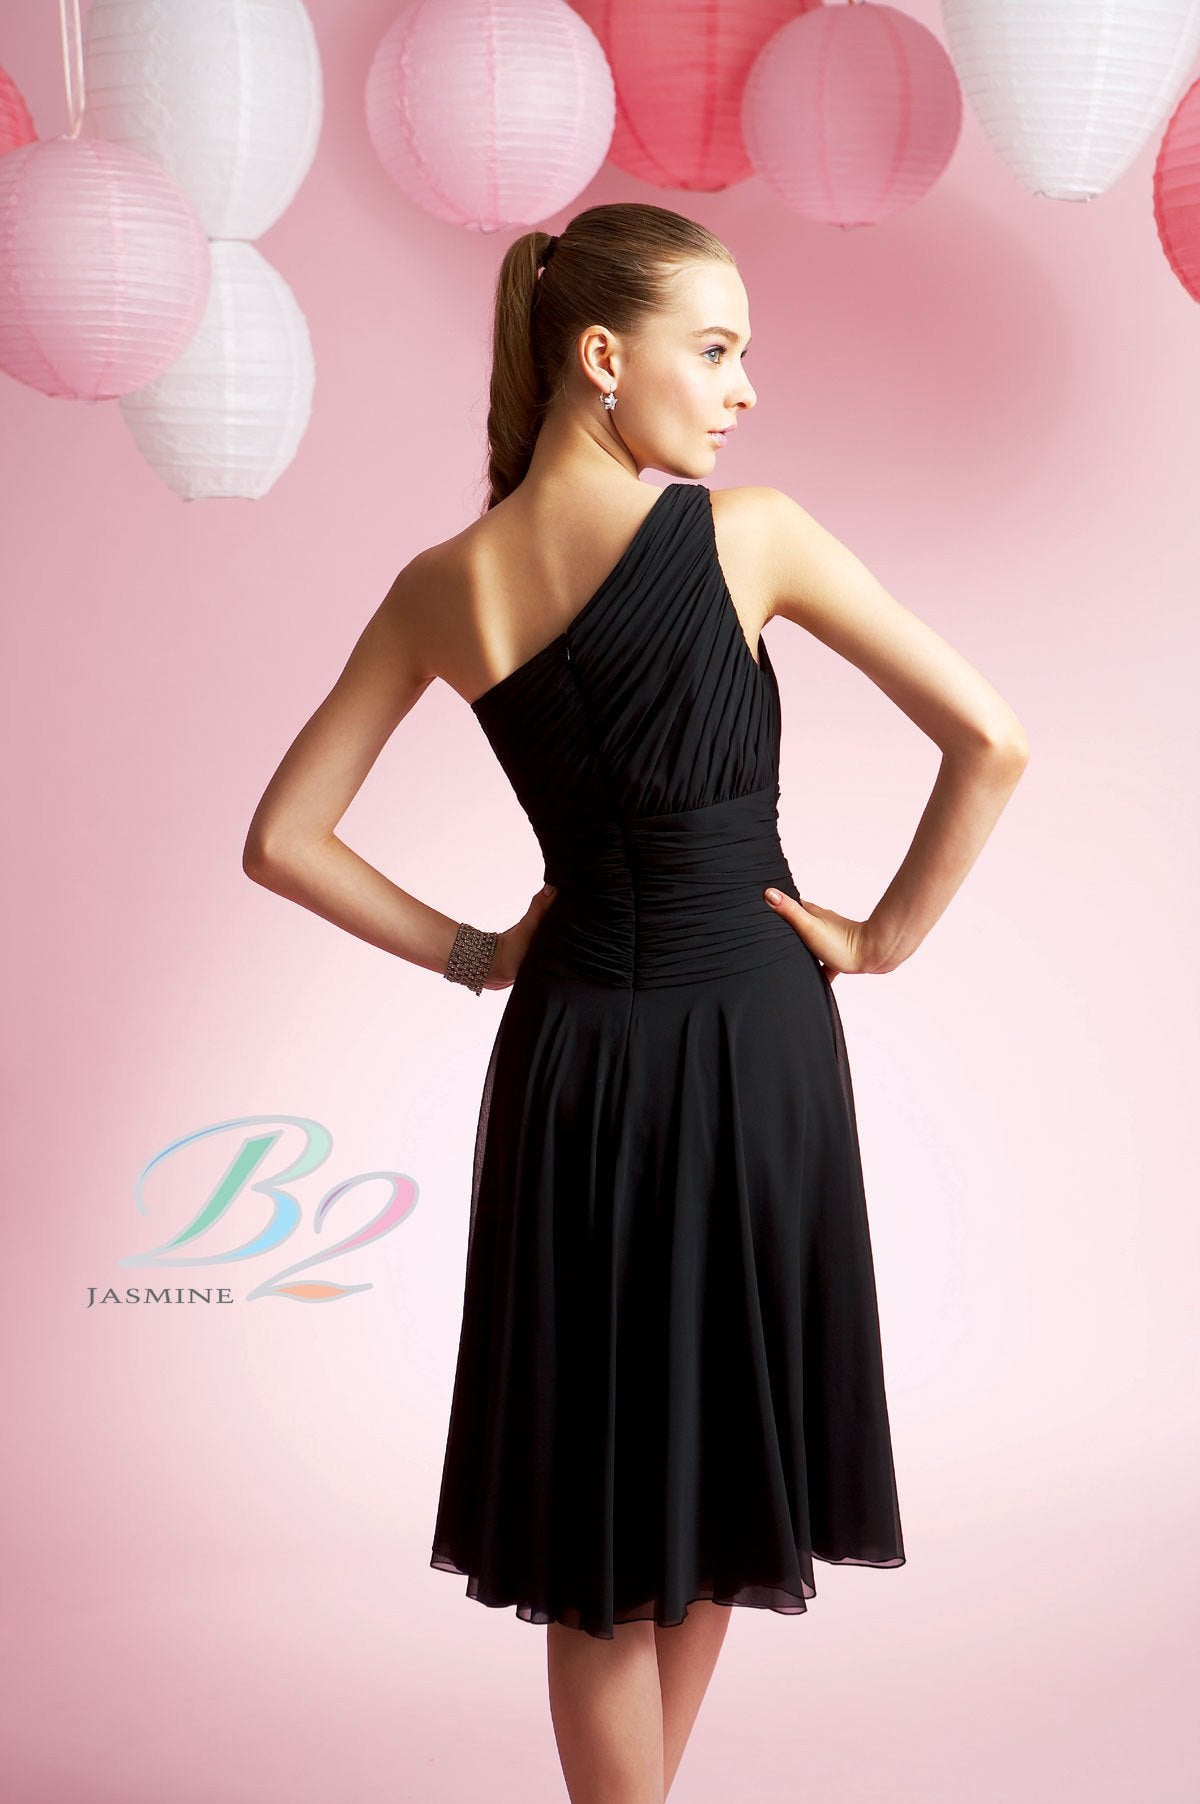 Jasmine B2 B3055 Black size 8 In Stock Bridesmaid Dress - Tom's Bridal